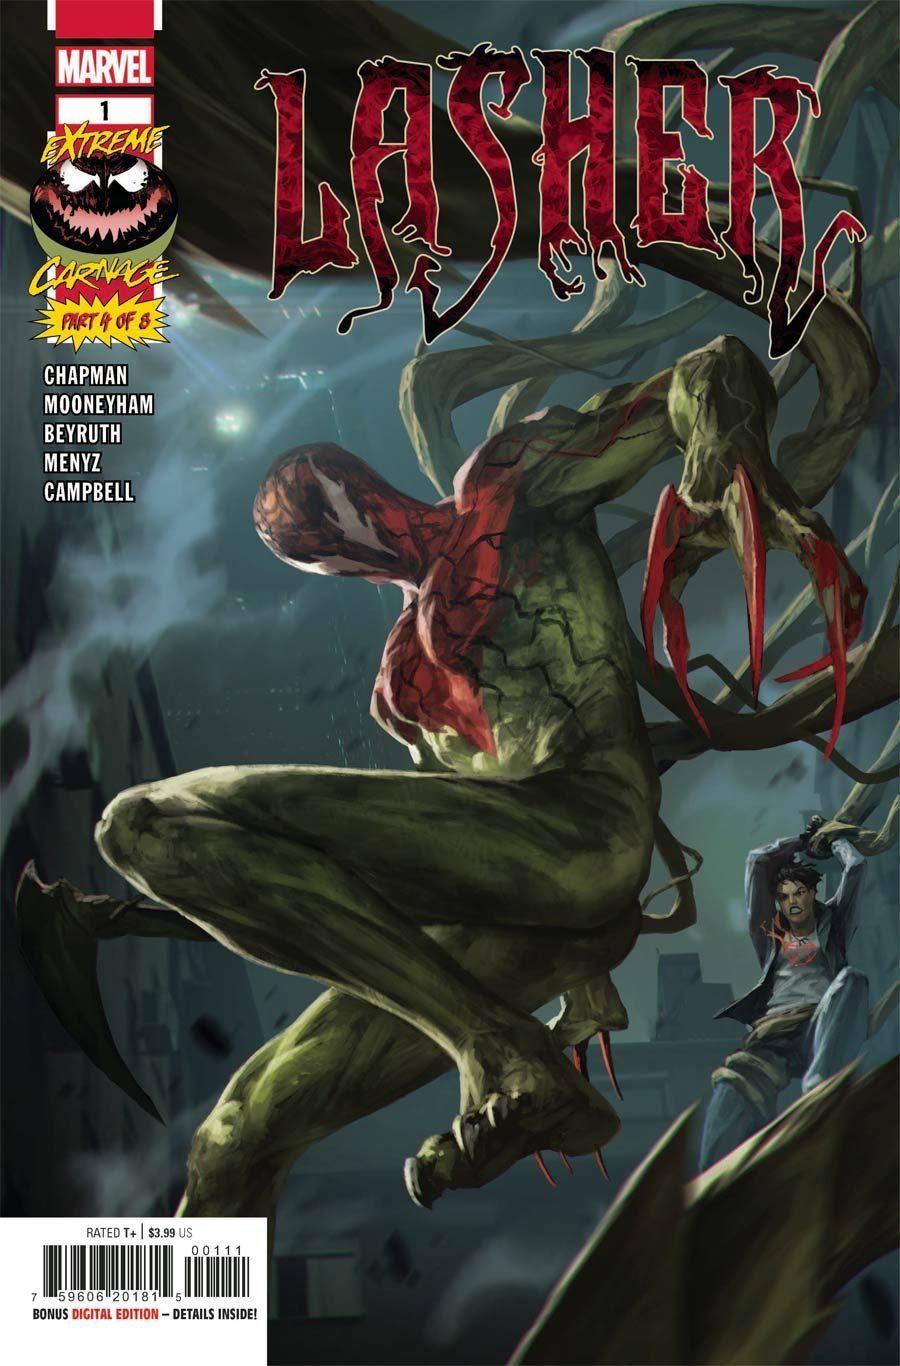 Extreme Carnage Lasher #1 (One Shot) Cover A Regular Skan Cover (Limit 1 Per Customer)